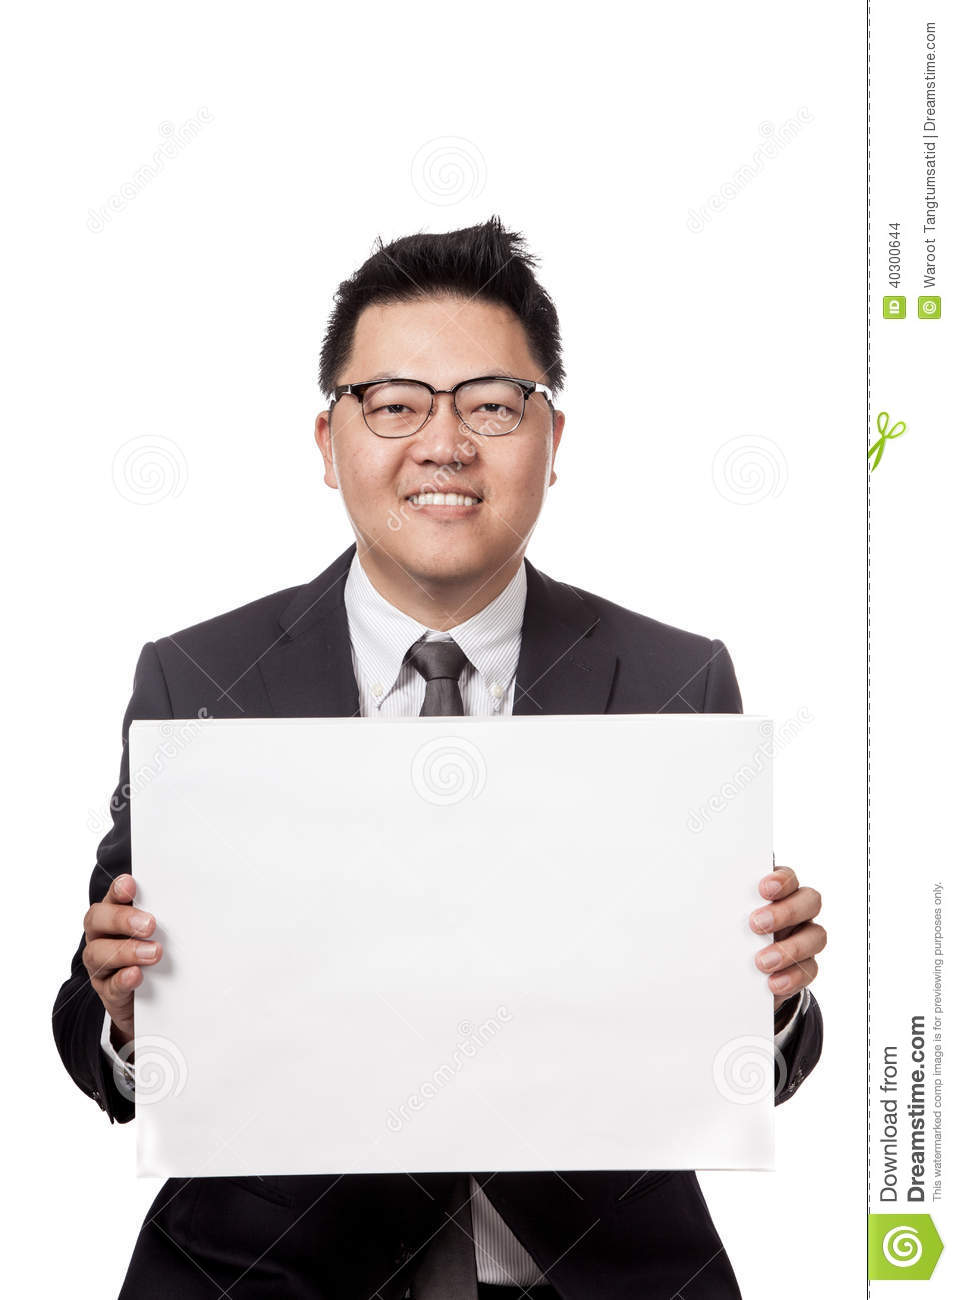 asian-business-man-hold-blank-sign-hands-wearing-black-suit-glasses-smile-isolated-white-background-40300644.jpg